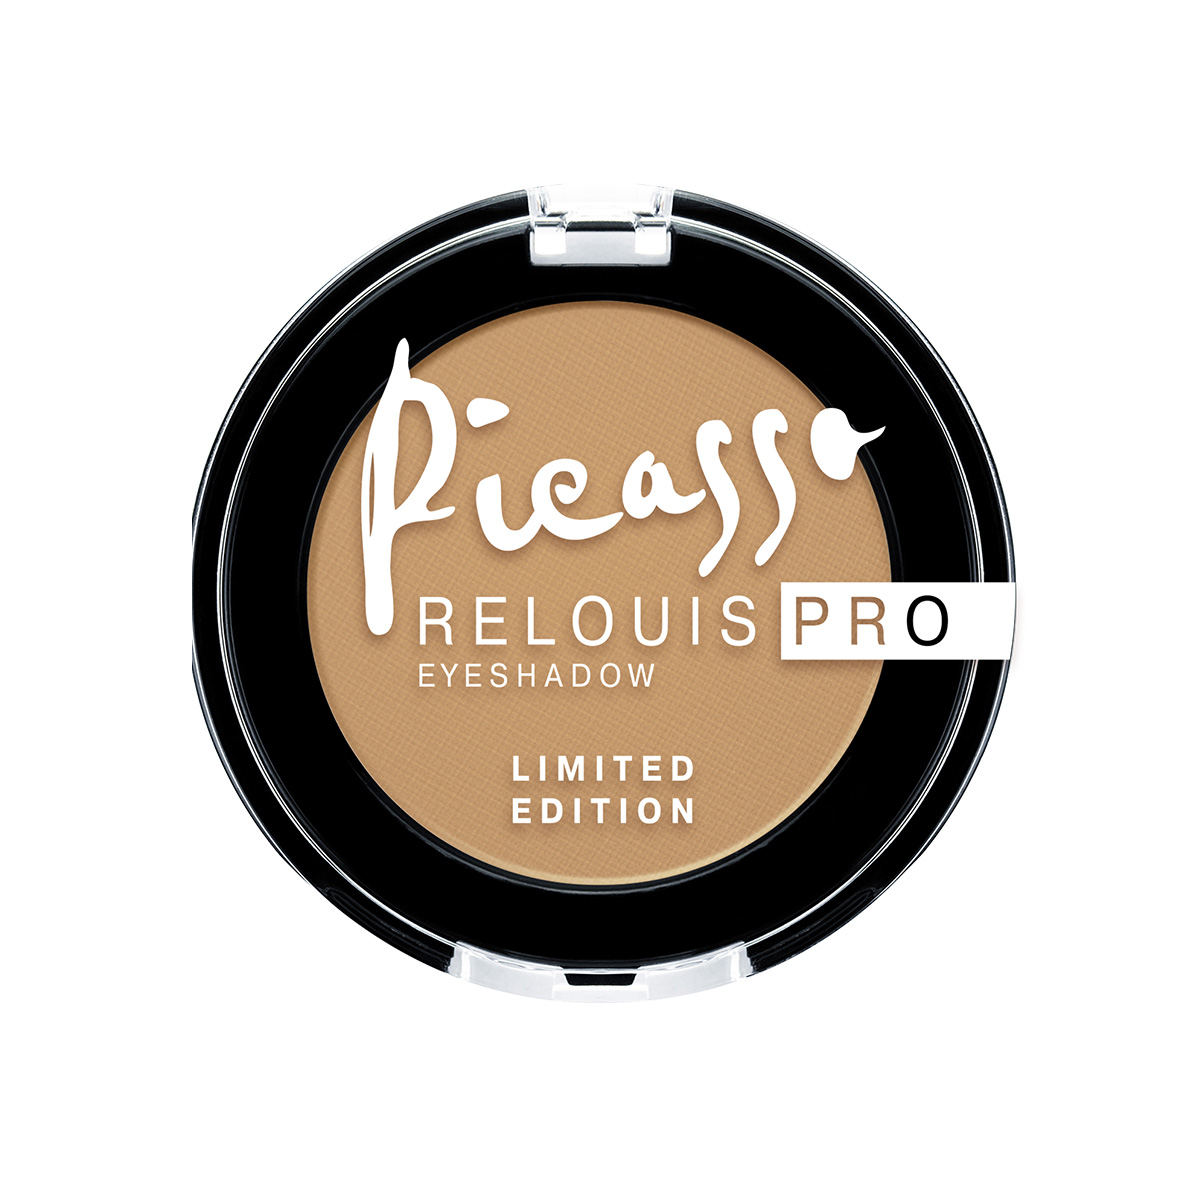 Relouis Pro Picasso Limited Edition 01 MUSTARD